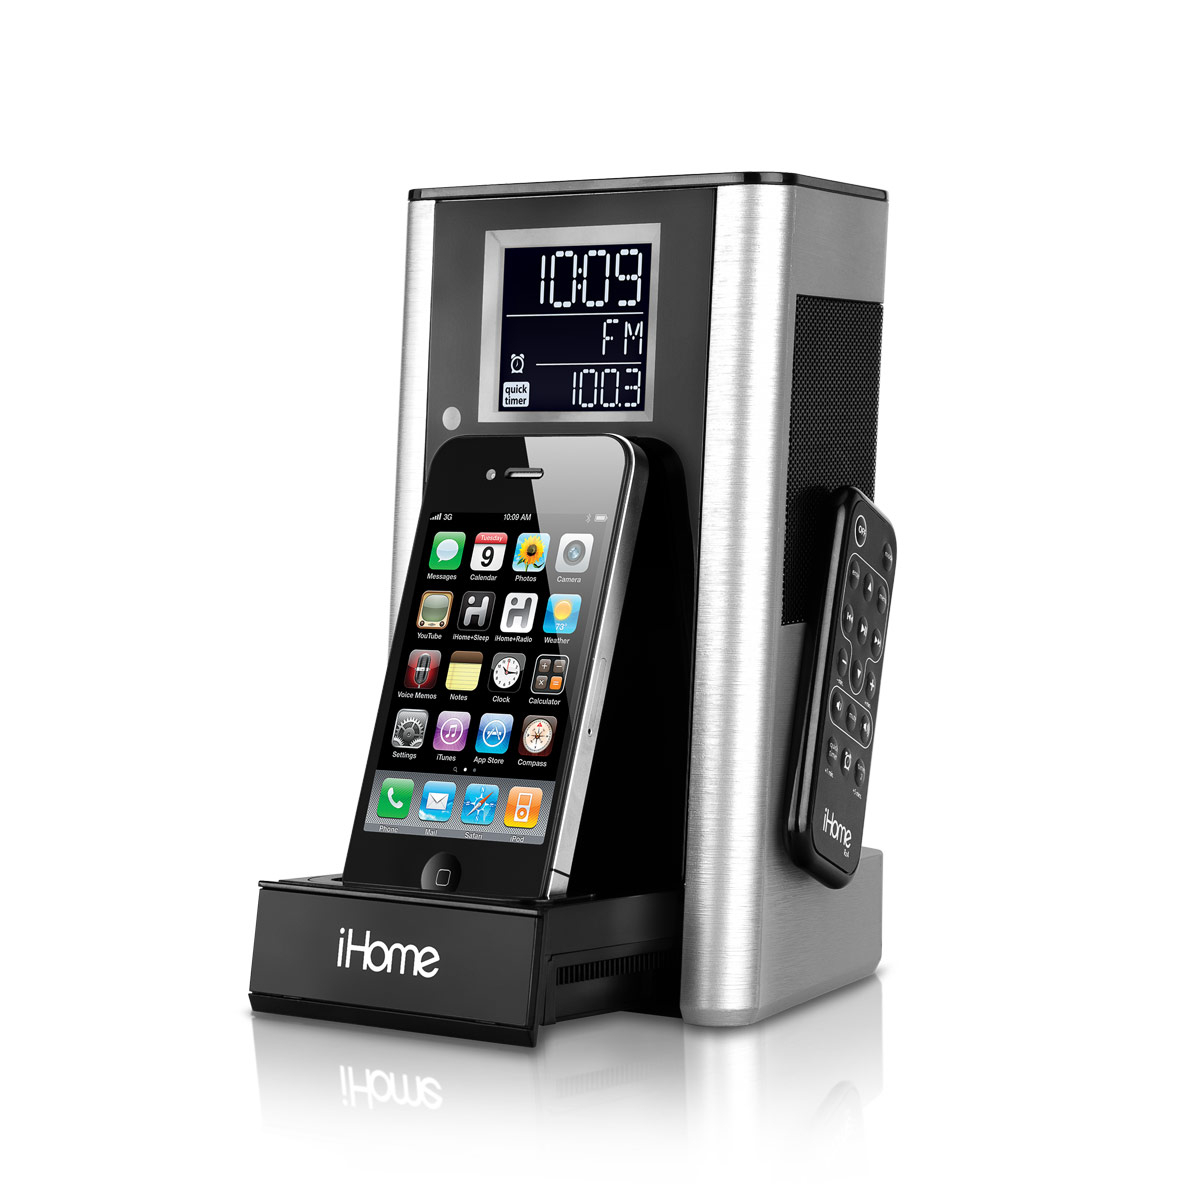 ihome ip39 kitchen timer and alarm clock radio speaker system for iphone ipod. Black Bedroom Furniture Sets. Home Design Ideas